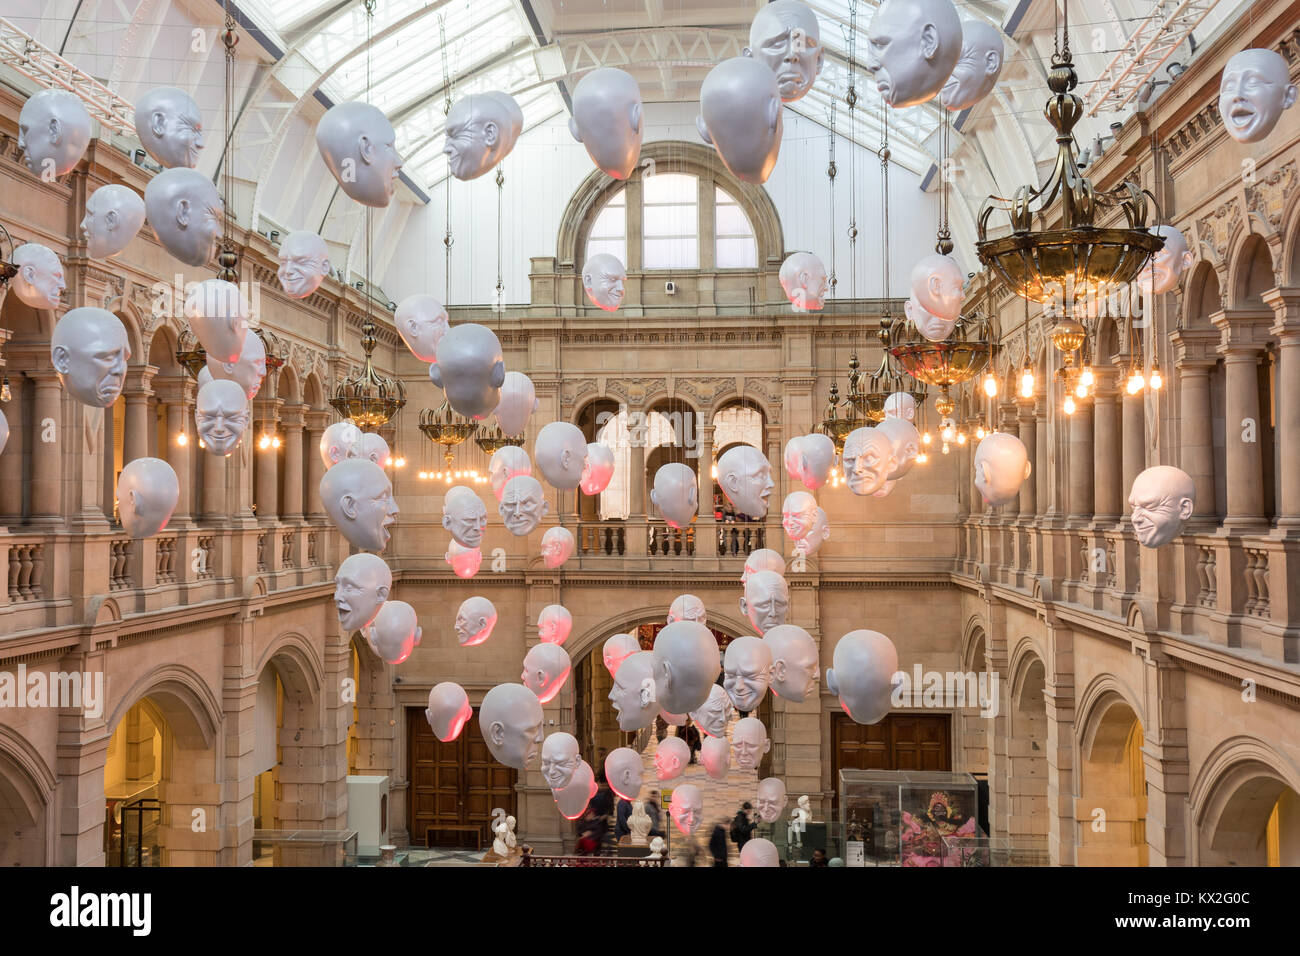 The Floating Heads installation by Sophie Cave at Kelvingrove Museum, Glasgow, Scotland, UK - Stock Image